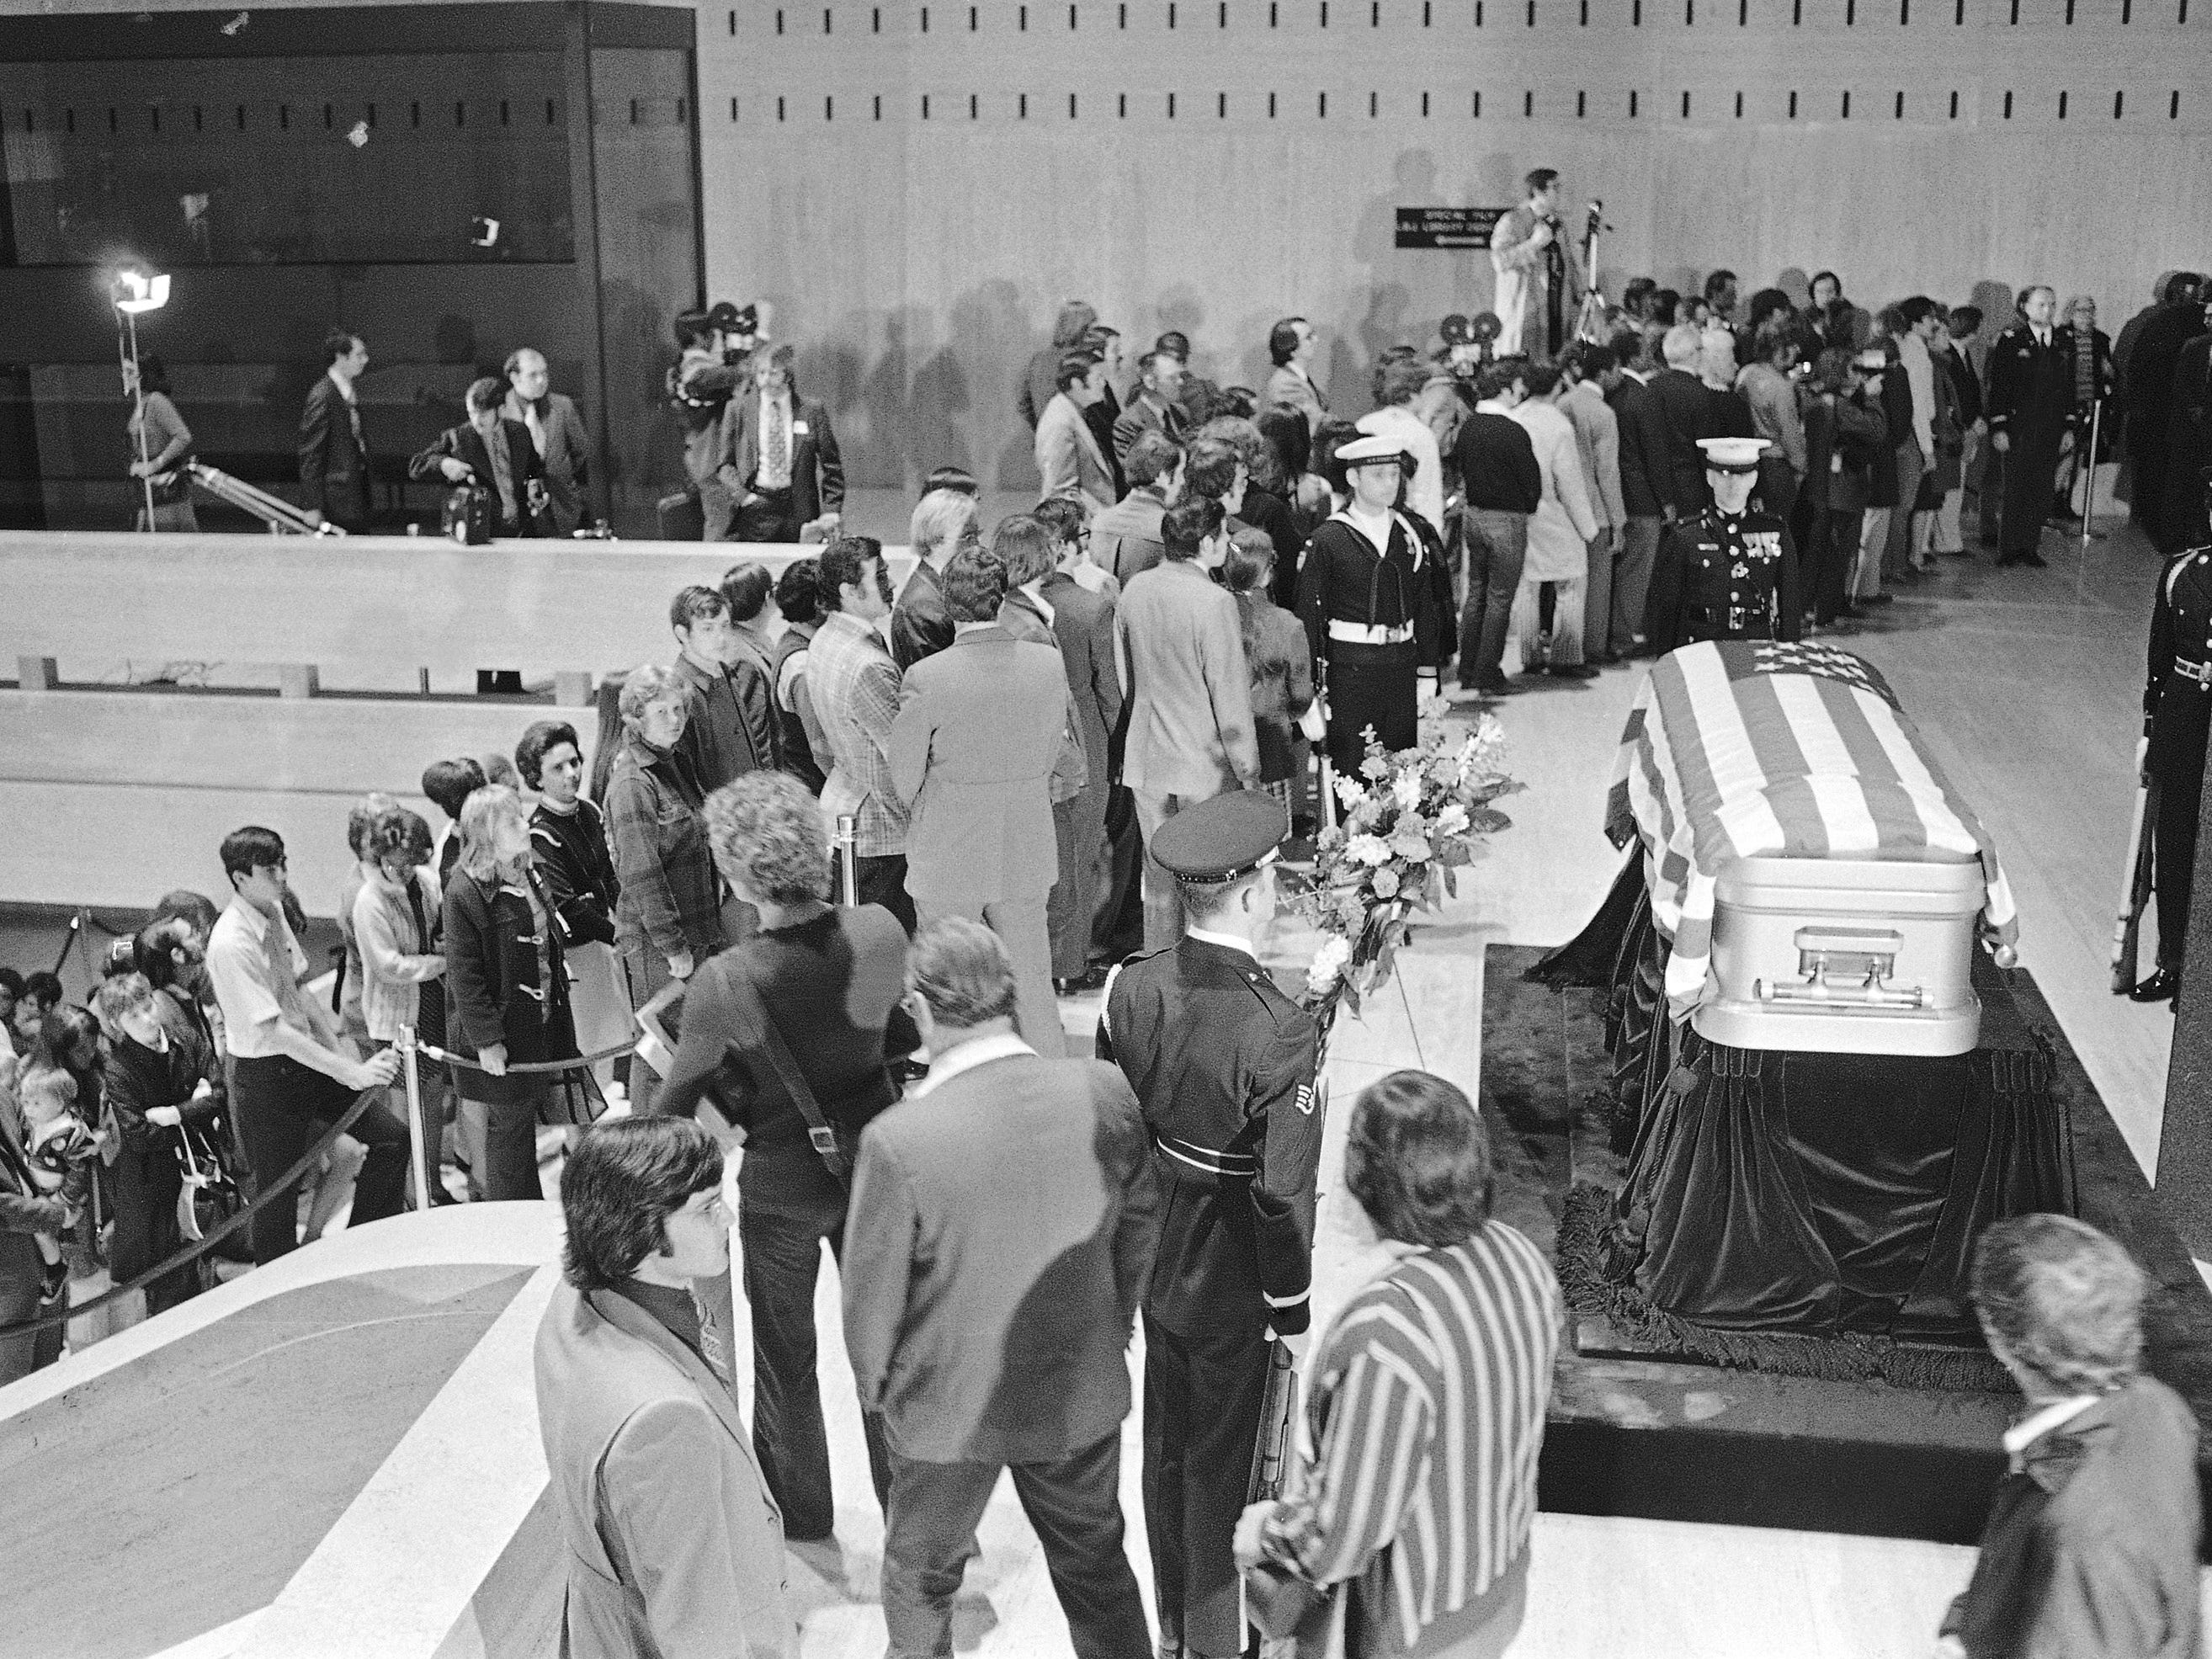 Crowds line the stairs and corridors as they pay respects to former President Lyndon B. Johnson whose body lies in state in the LBJ Library in Austin, Texas, on Jan. 23, 1973.